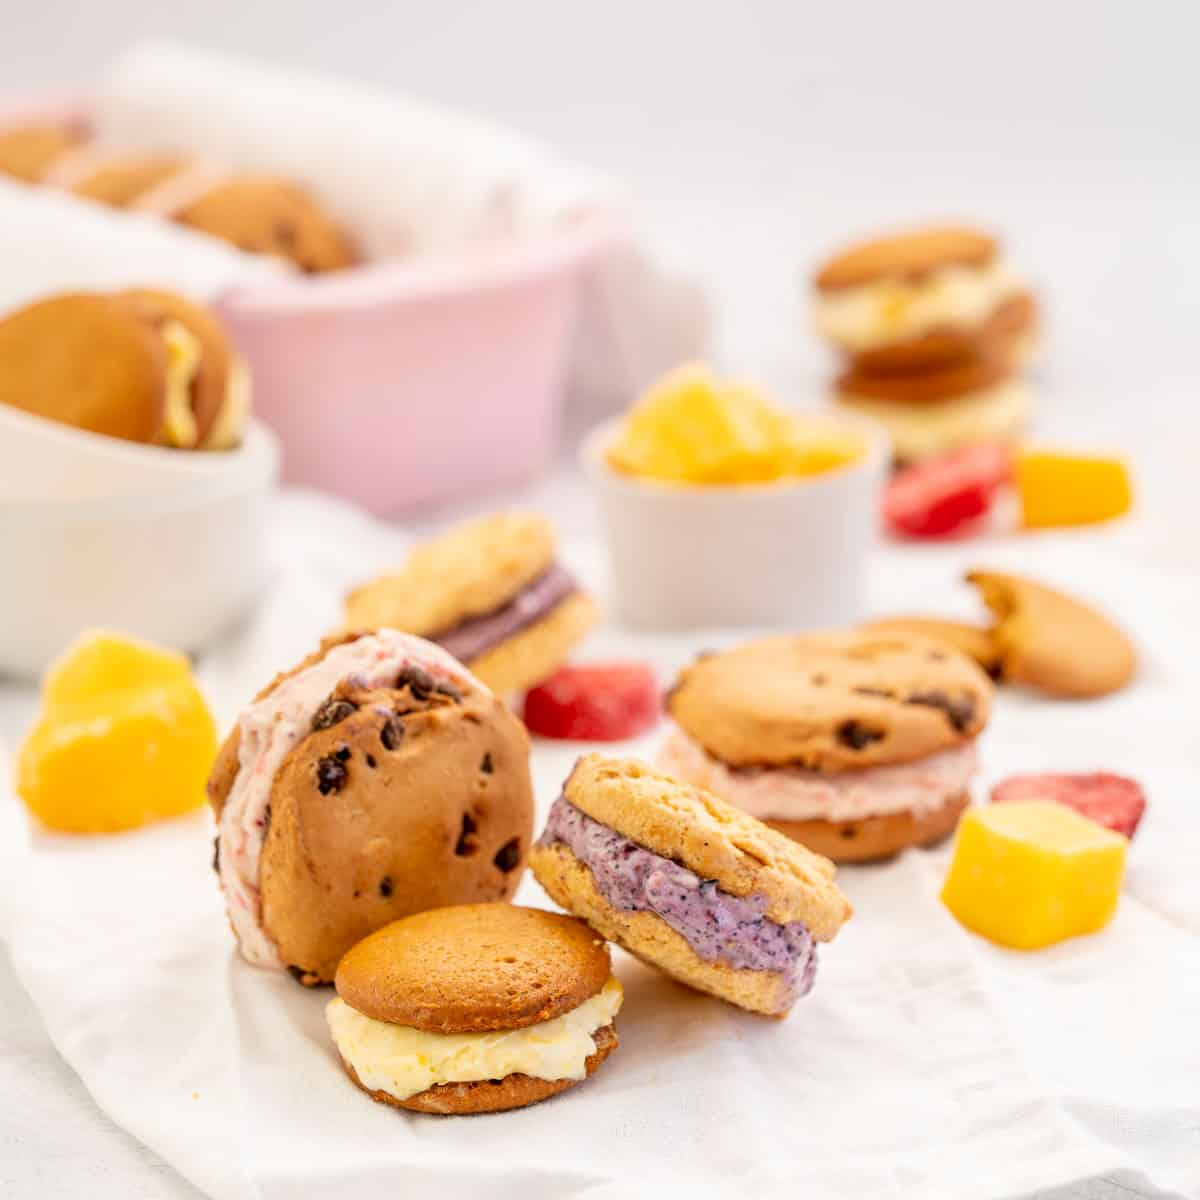 3 diffferent flavoured ice cream cookie sandwiches with frozen fruit pieces.